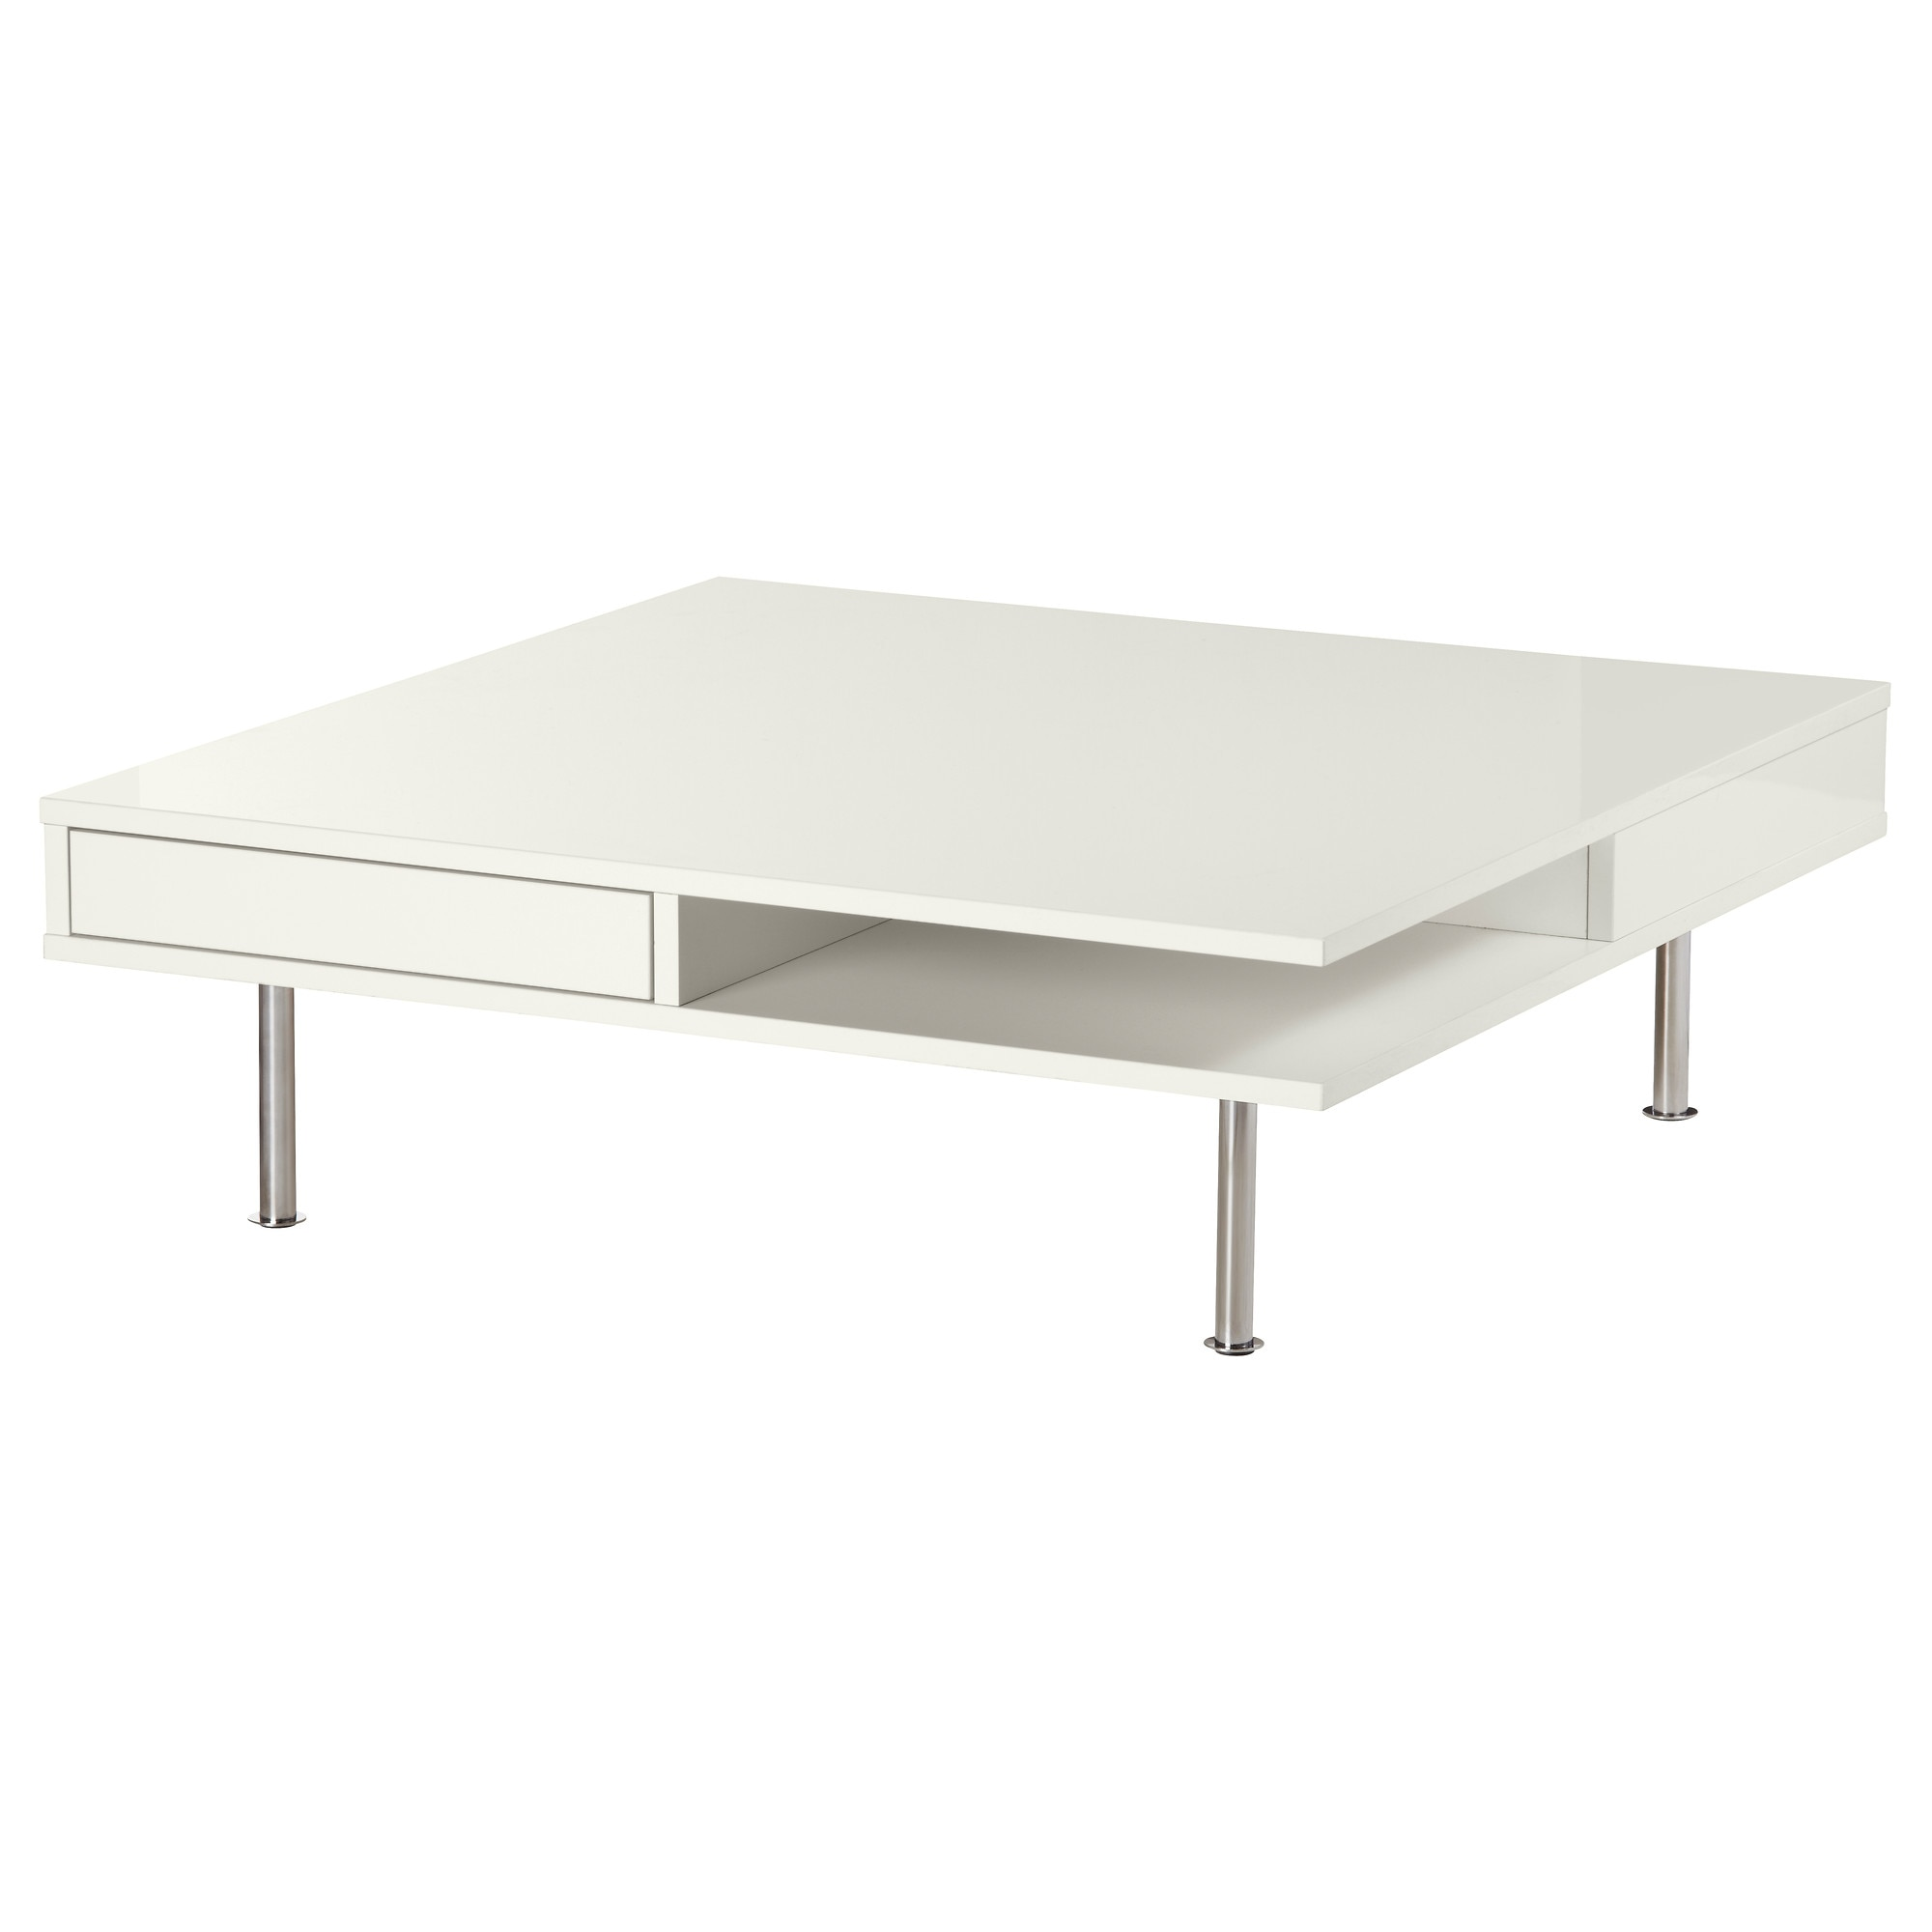 Exceptionnel TOFTERYD Coffee Table   High Gloss White   IKEA